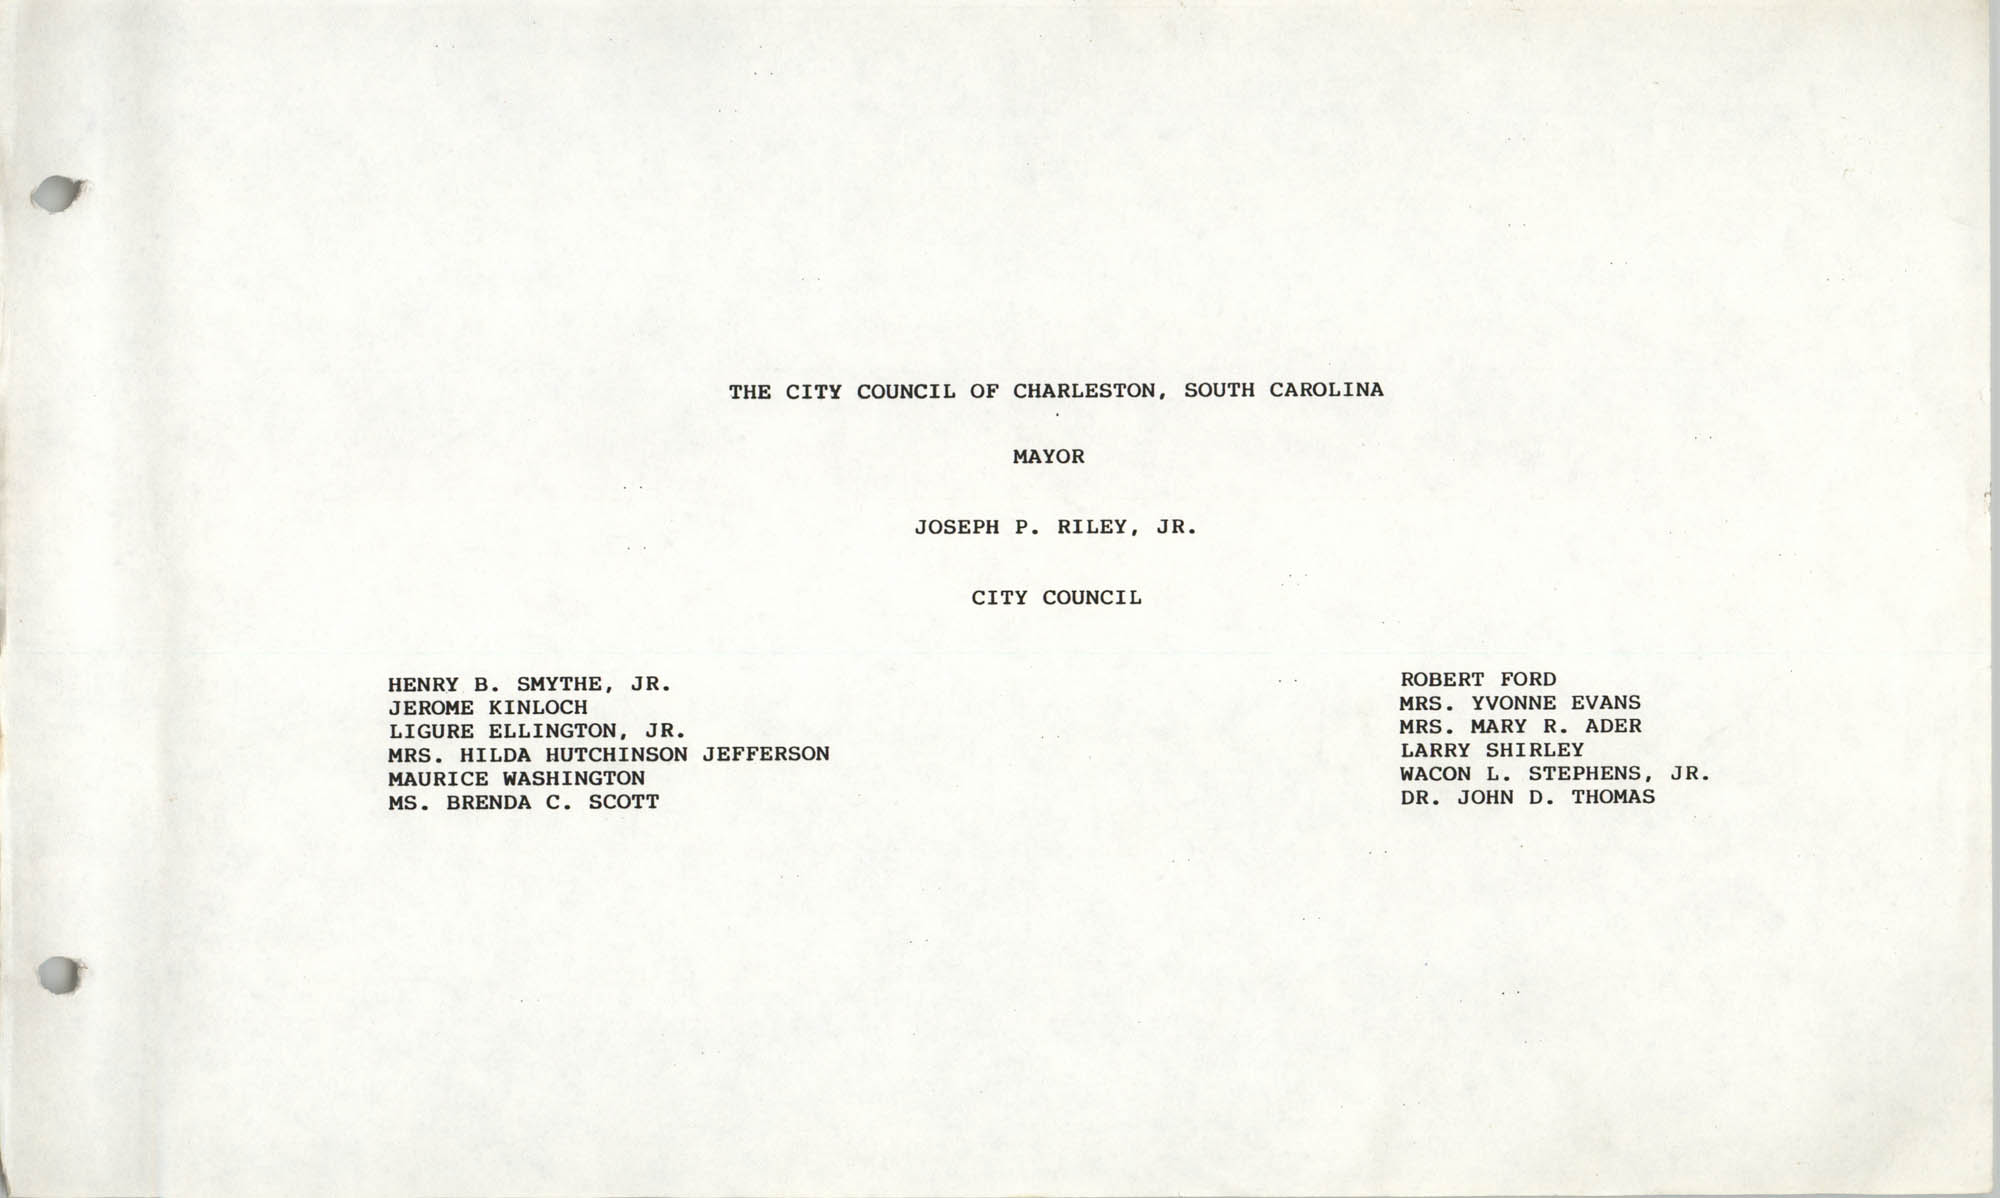 The City Council of Charleston, South Carolina, 1993 Budget, Cover